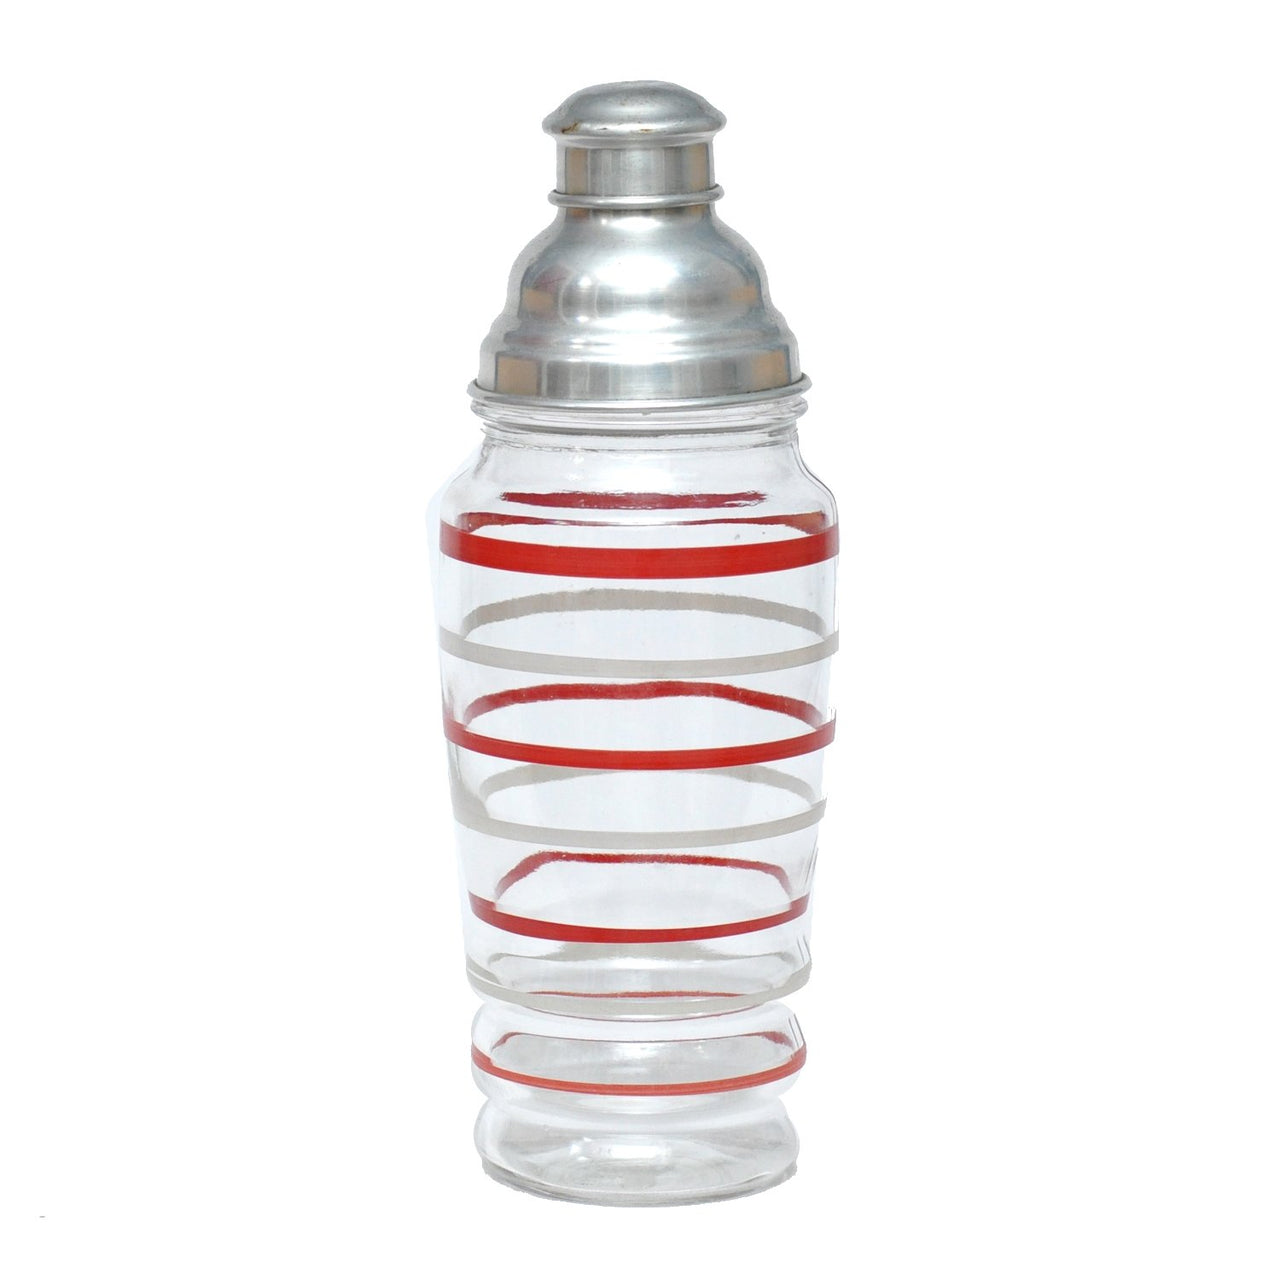 Vintage Red White Striped Glass Shaker | The Hour Shop